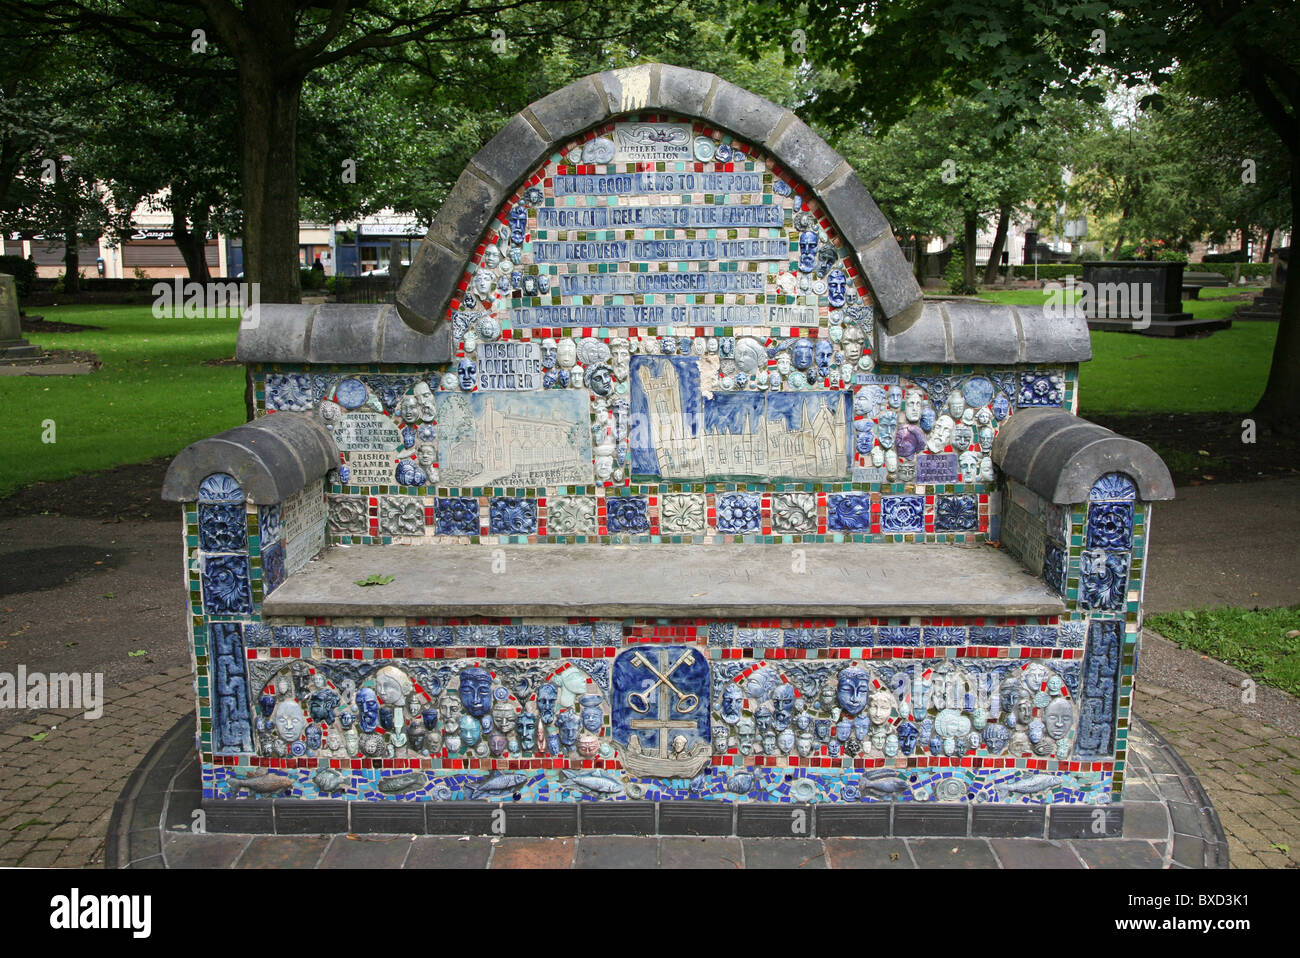 St. Peter's community mosaic, a ceramic seat or bench in the churchyard of St Peter ad Vincula, also known as - Stock Image